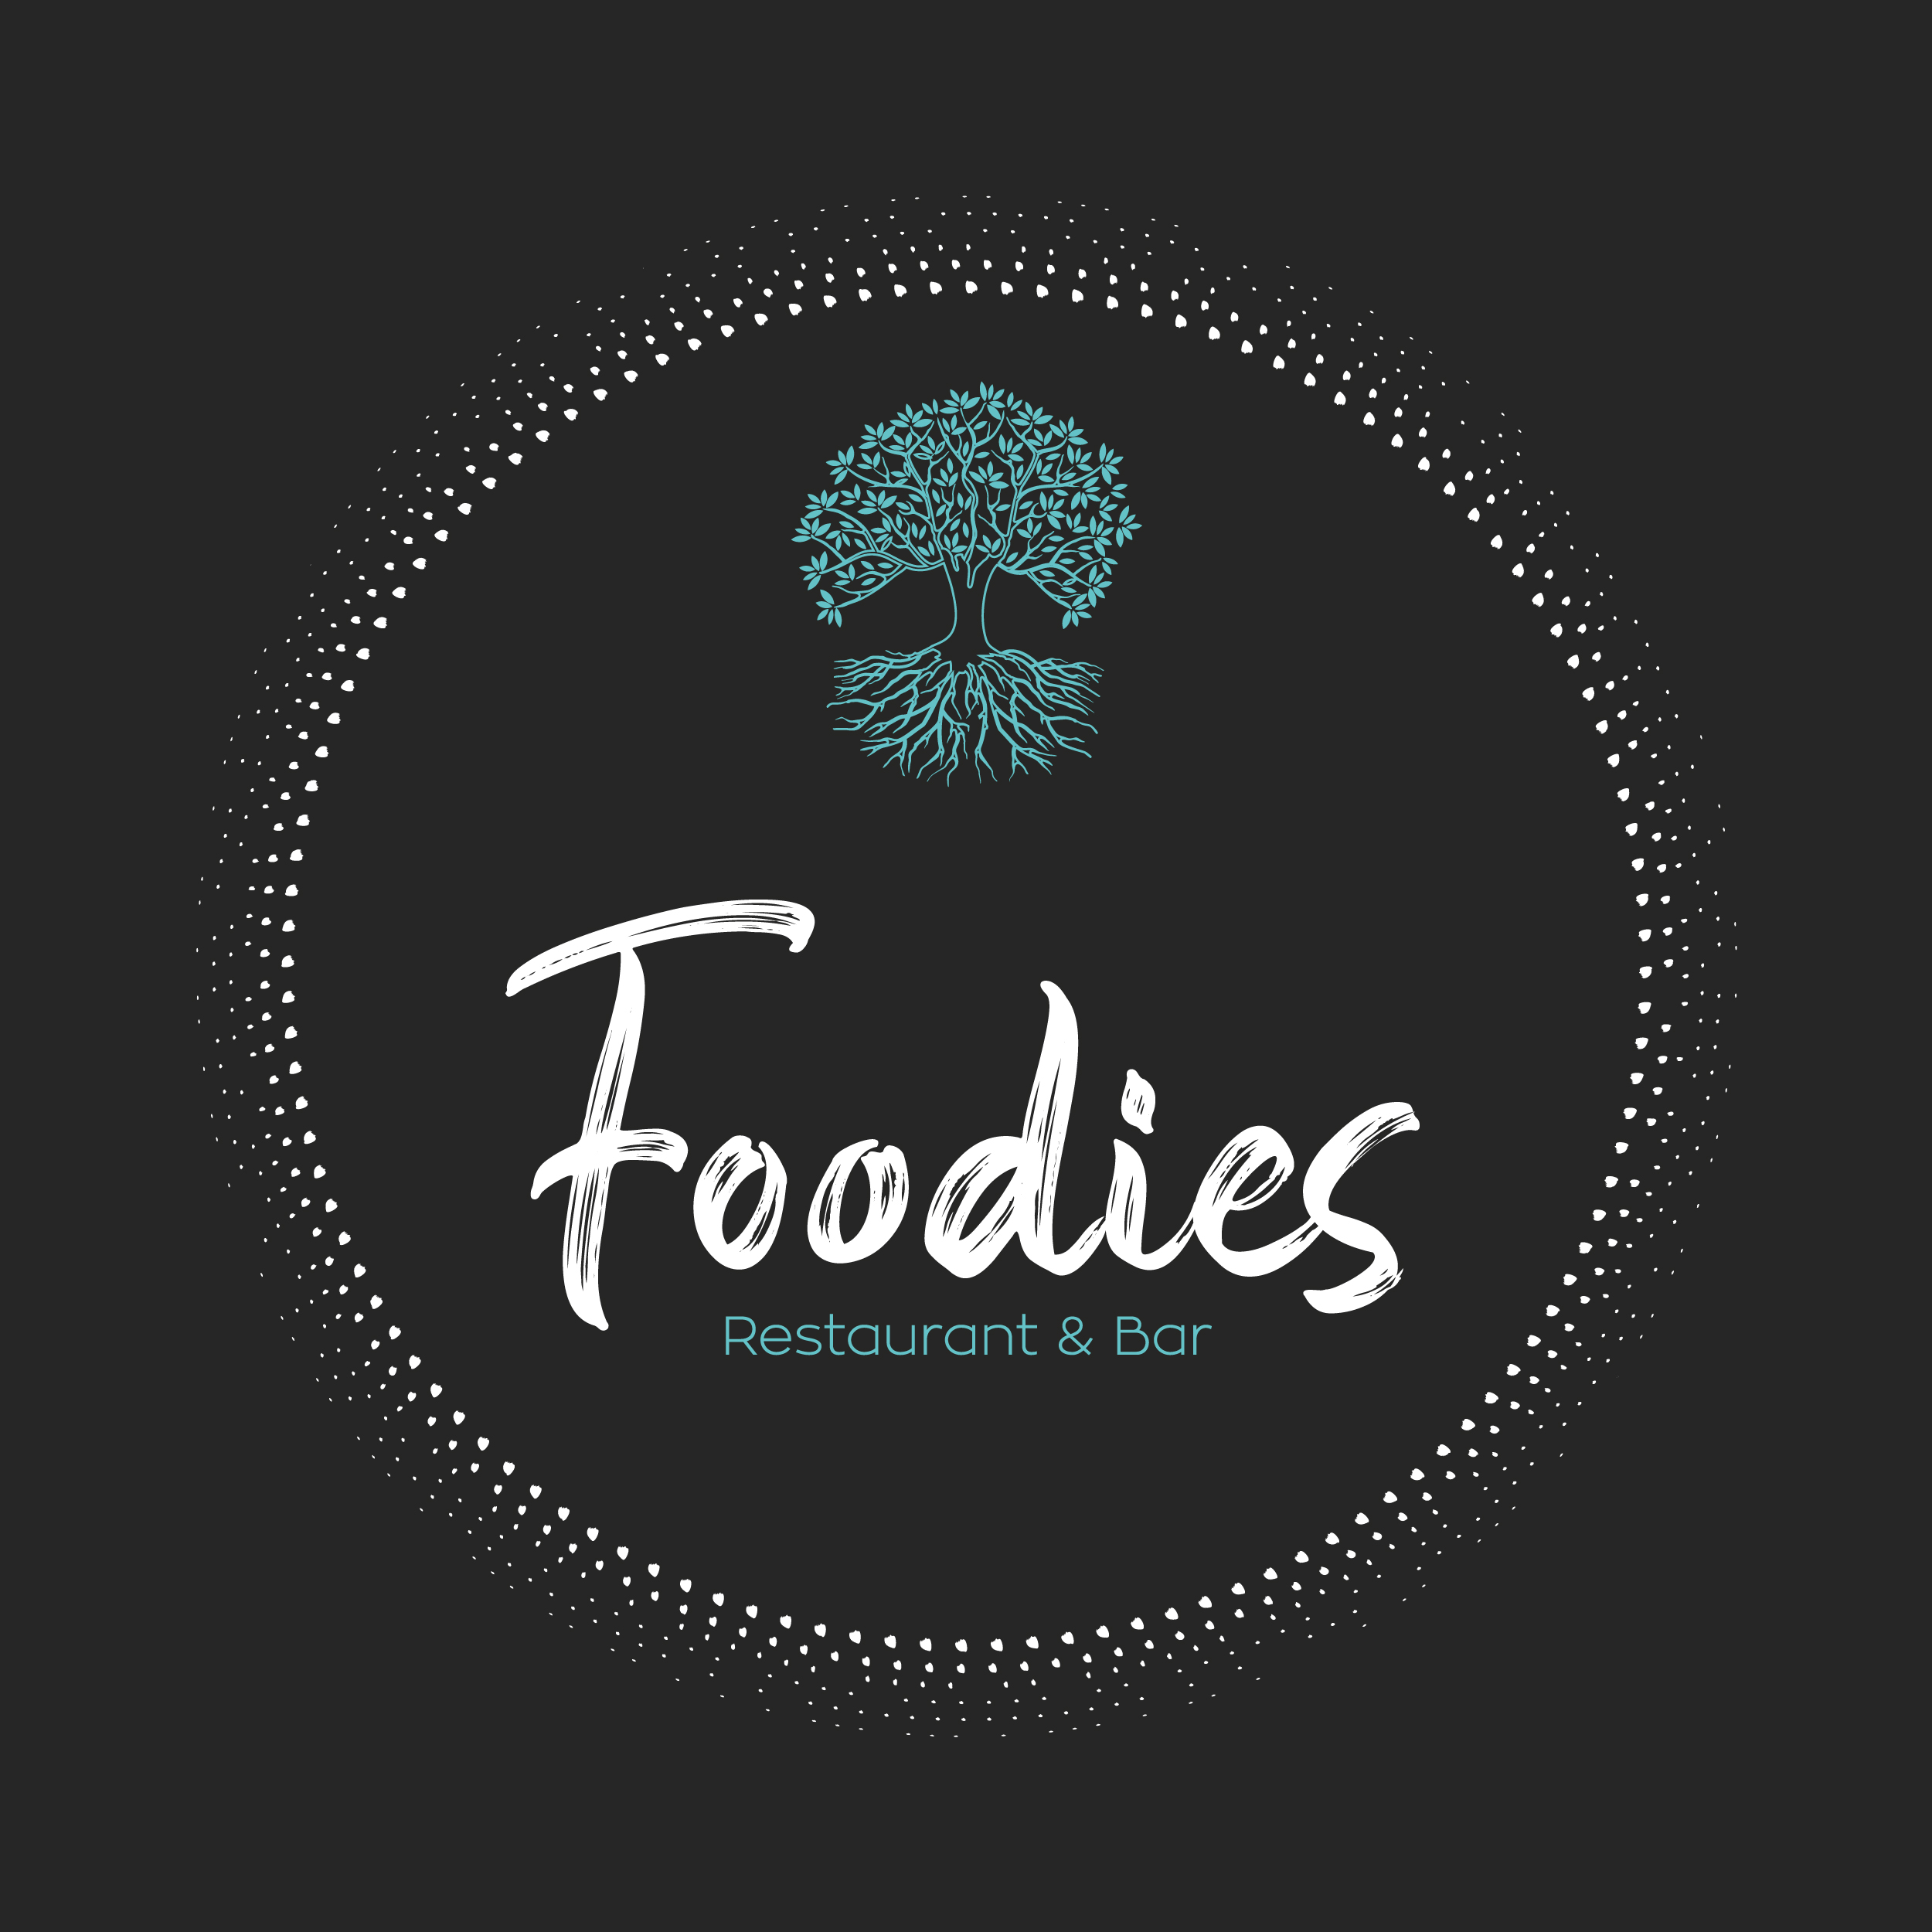 Foodies Restaurant & Bar